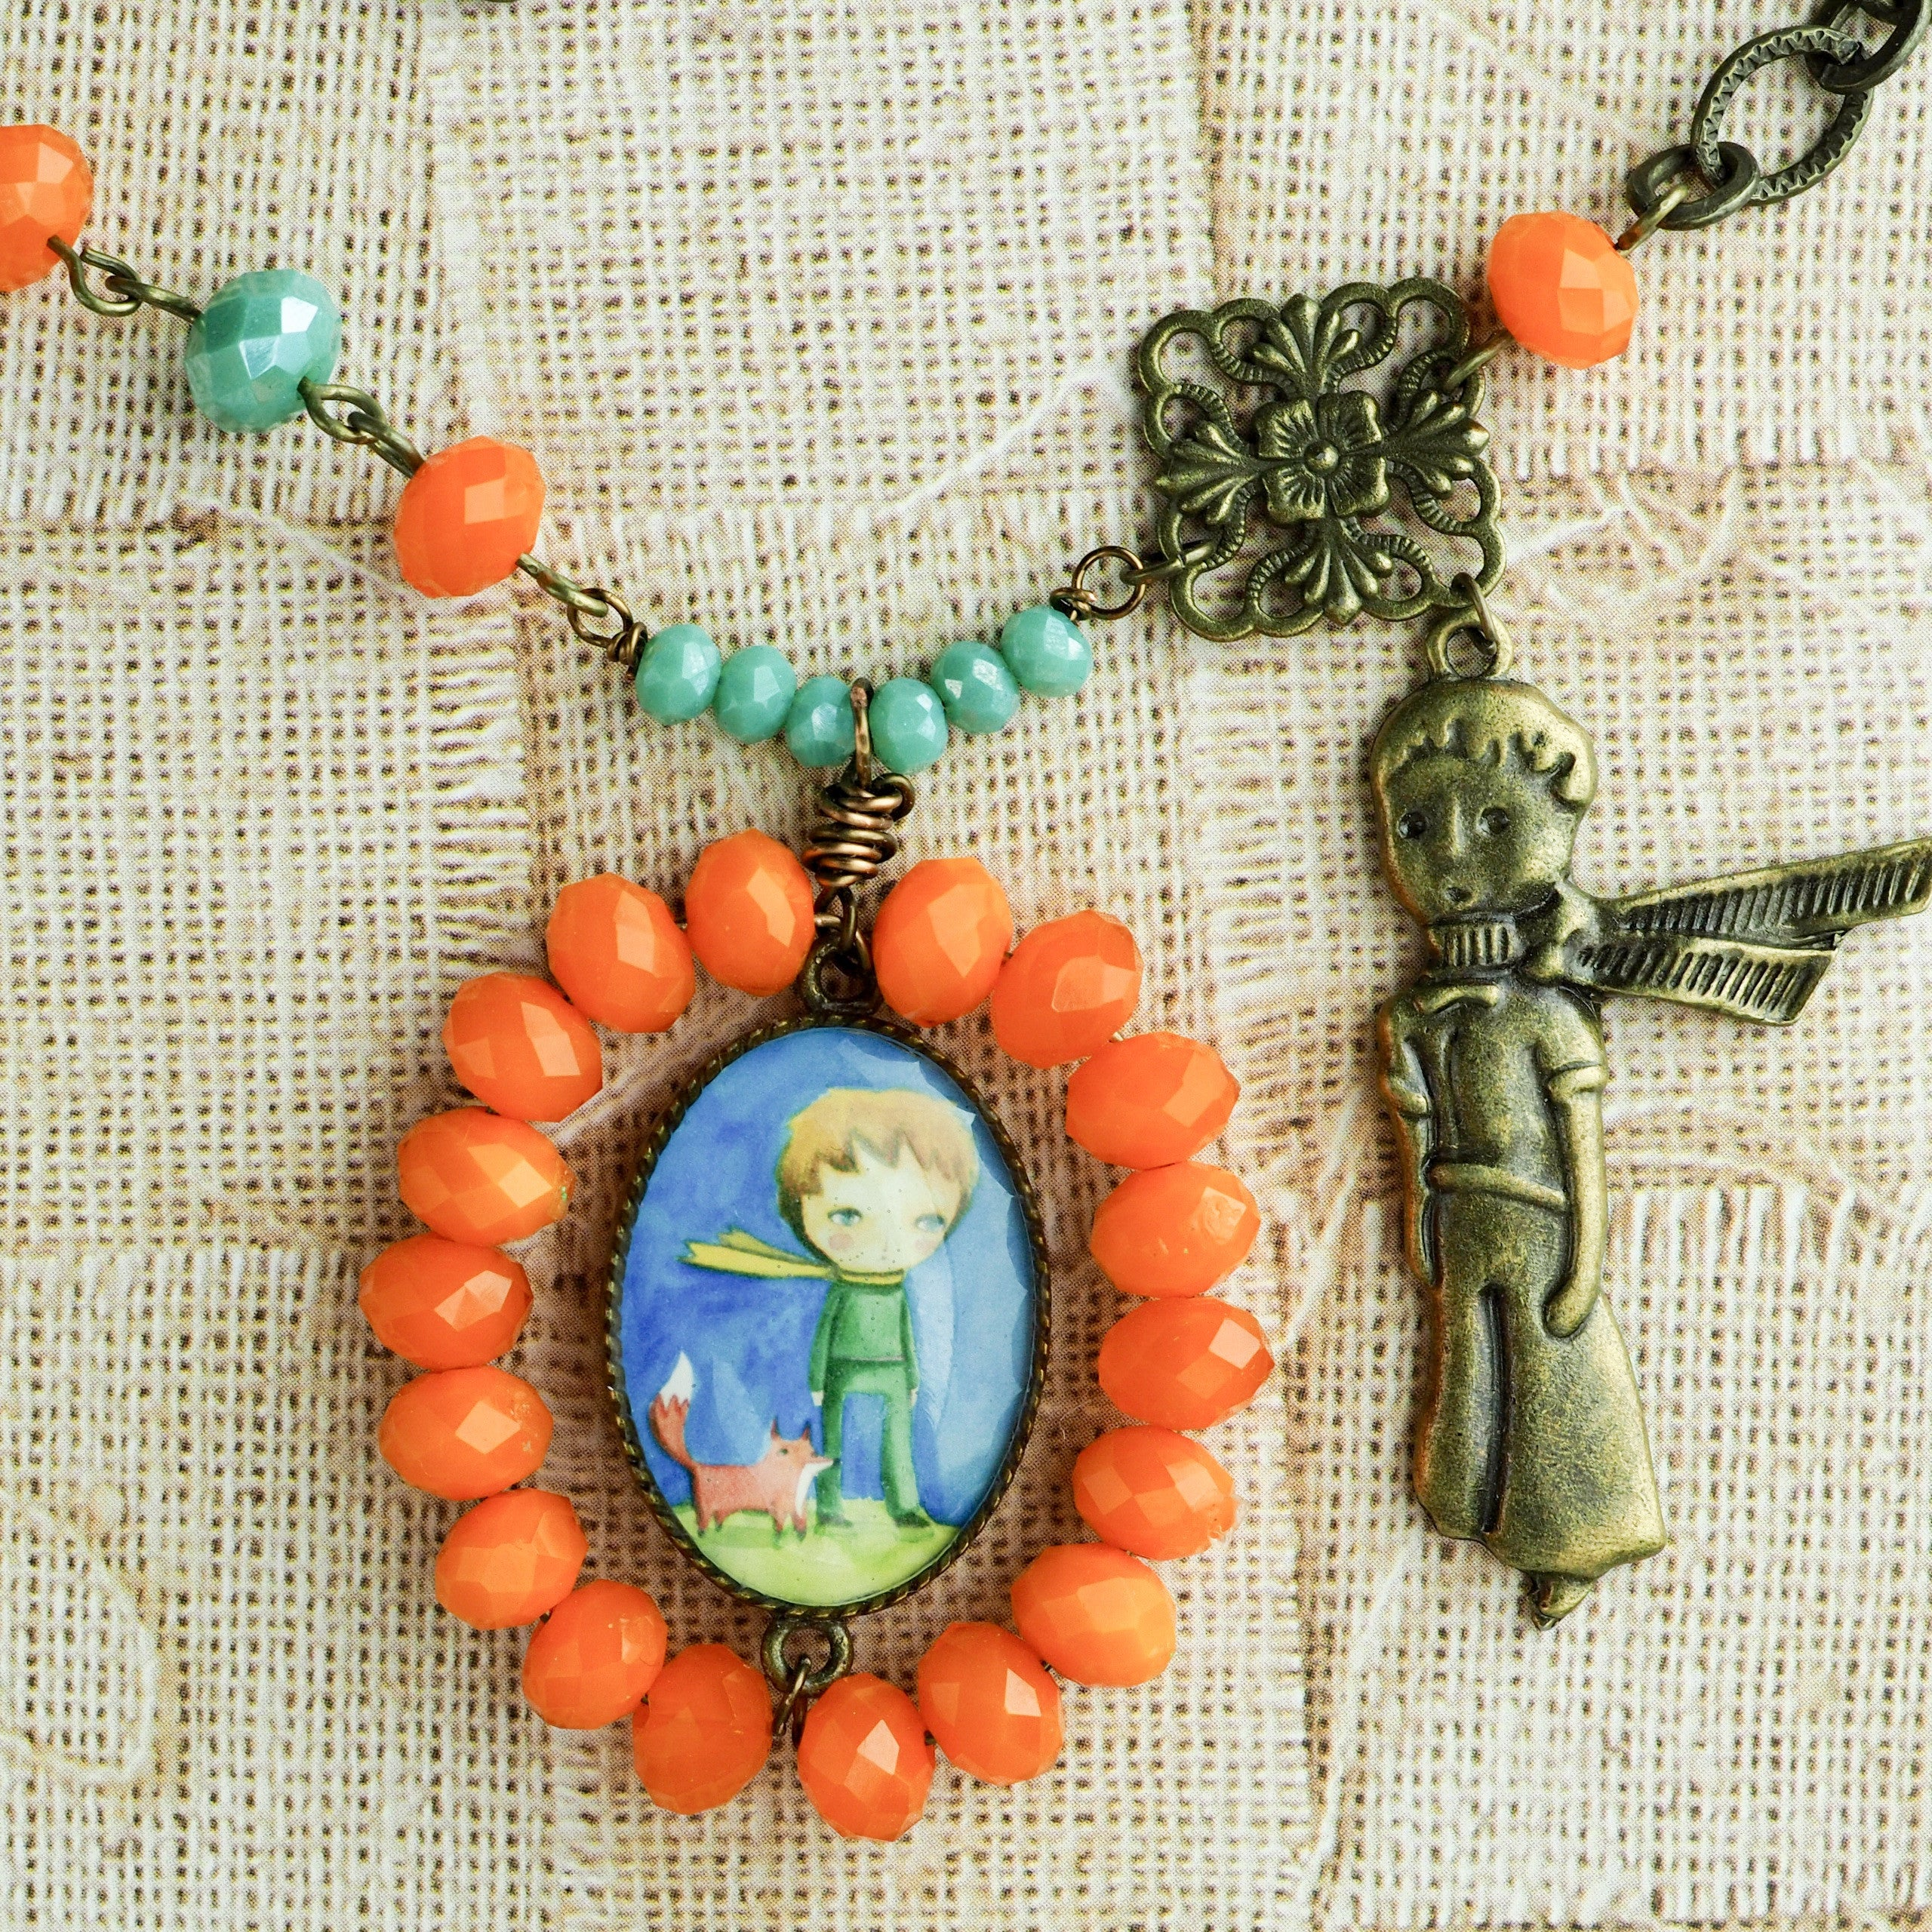 The little prince lives in this handcrafted necklace. Hand made by the talented mixed media artist, Danita.